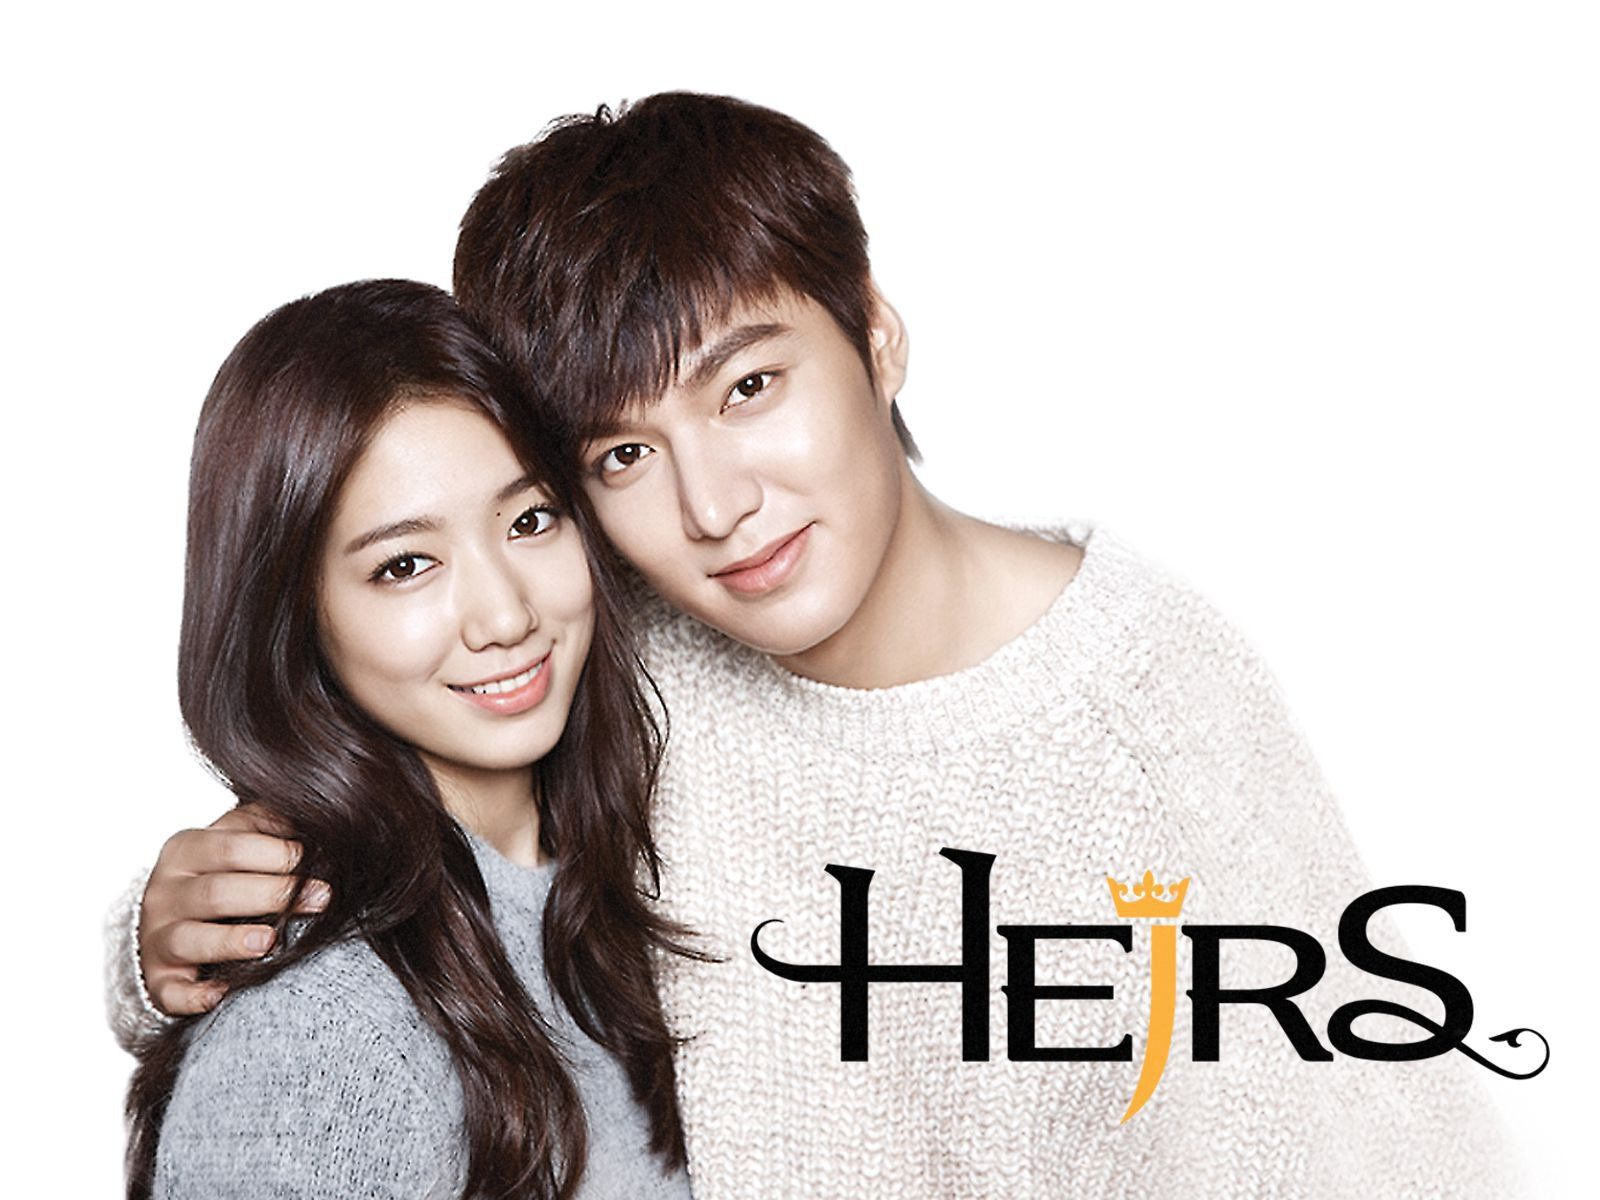 The Heirs Wallpapers - Top Free The Heirs Backgrounds ...